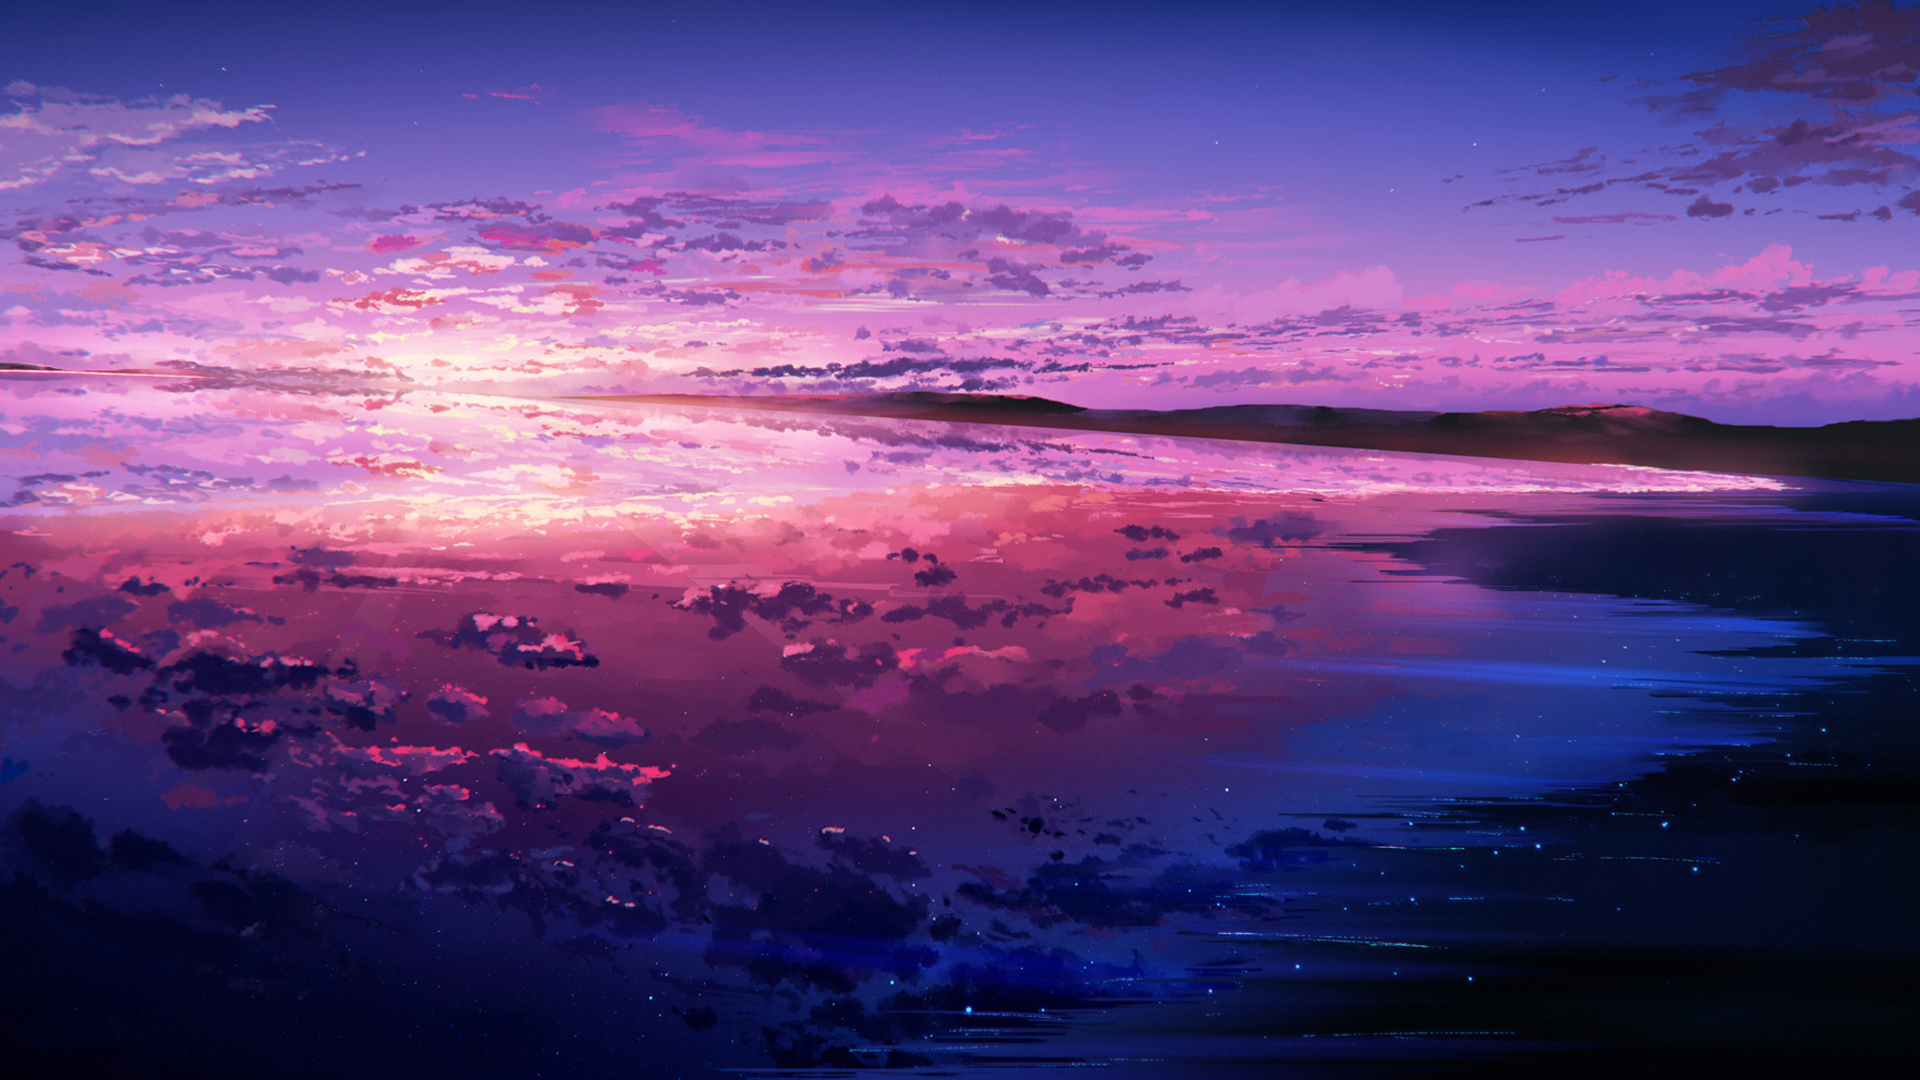 1920x1080 Purple Sunset Reflected In The Ocean 1080p Laptop Full Hd Wallpaper Hd Artist 4k Wallpapers Images Photos And Background